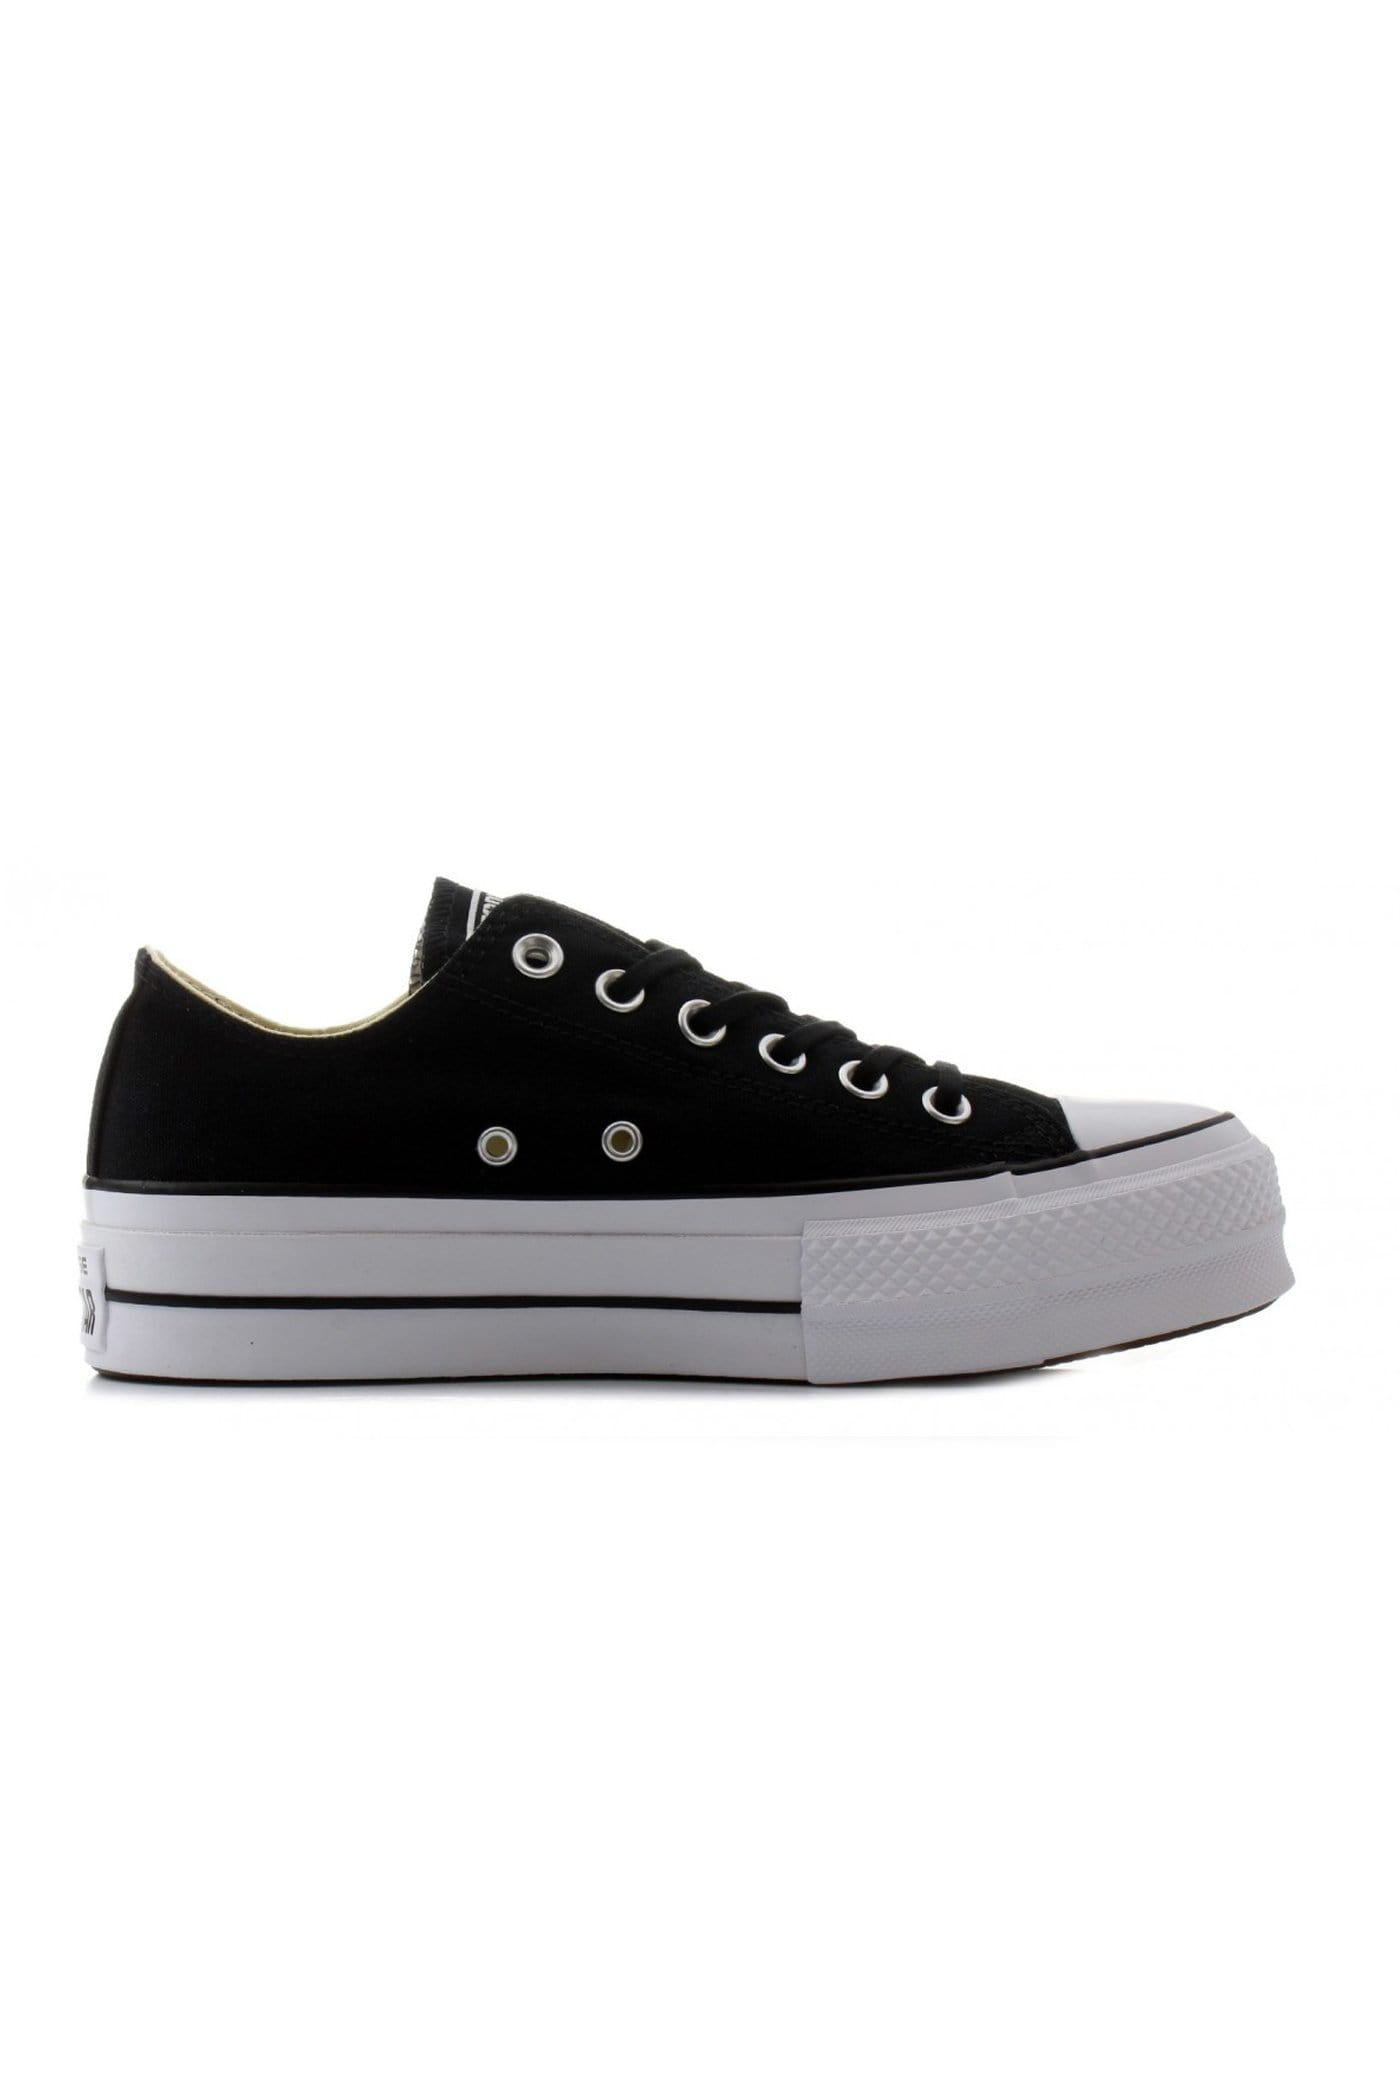 Chuck Taylor All Star Lift Ox Black White